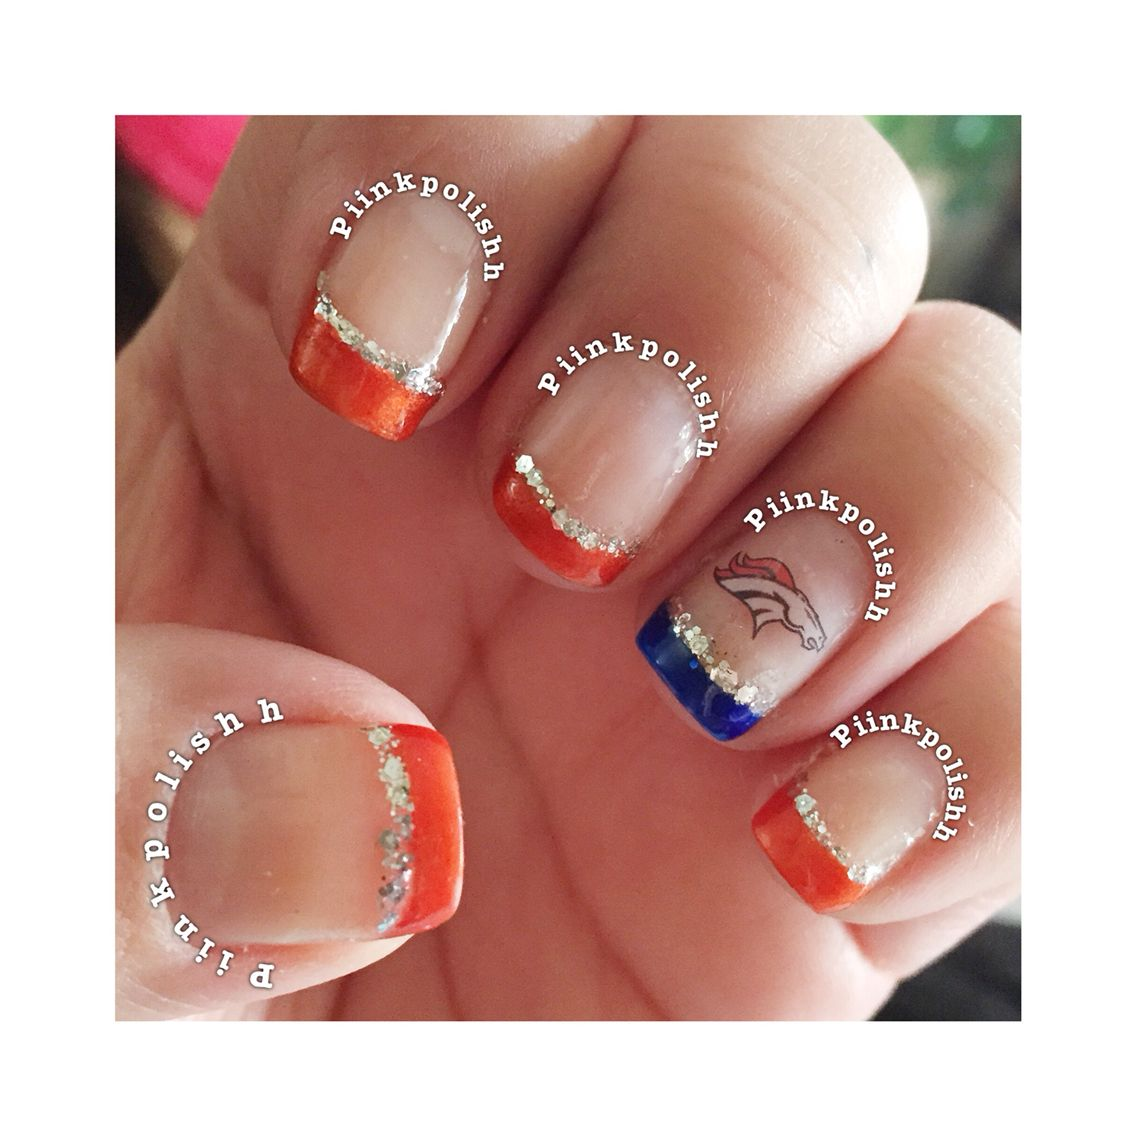 Denver broncos nails lookin good nails toes pinterest denver broncos nail art go broncos prinsesfo Gallery